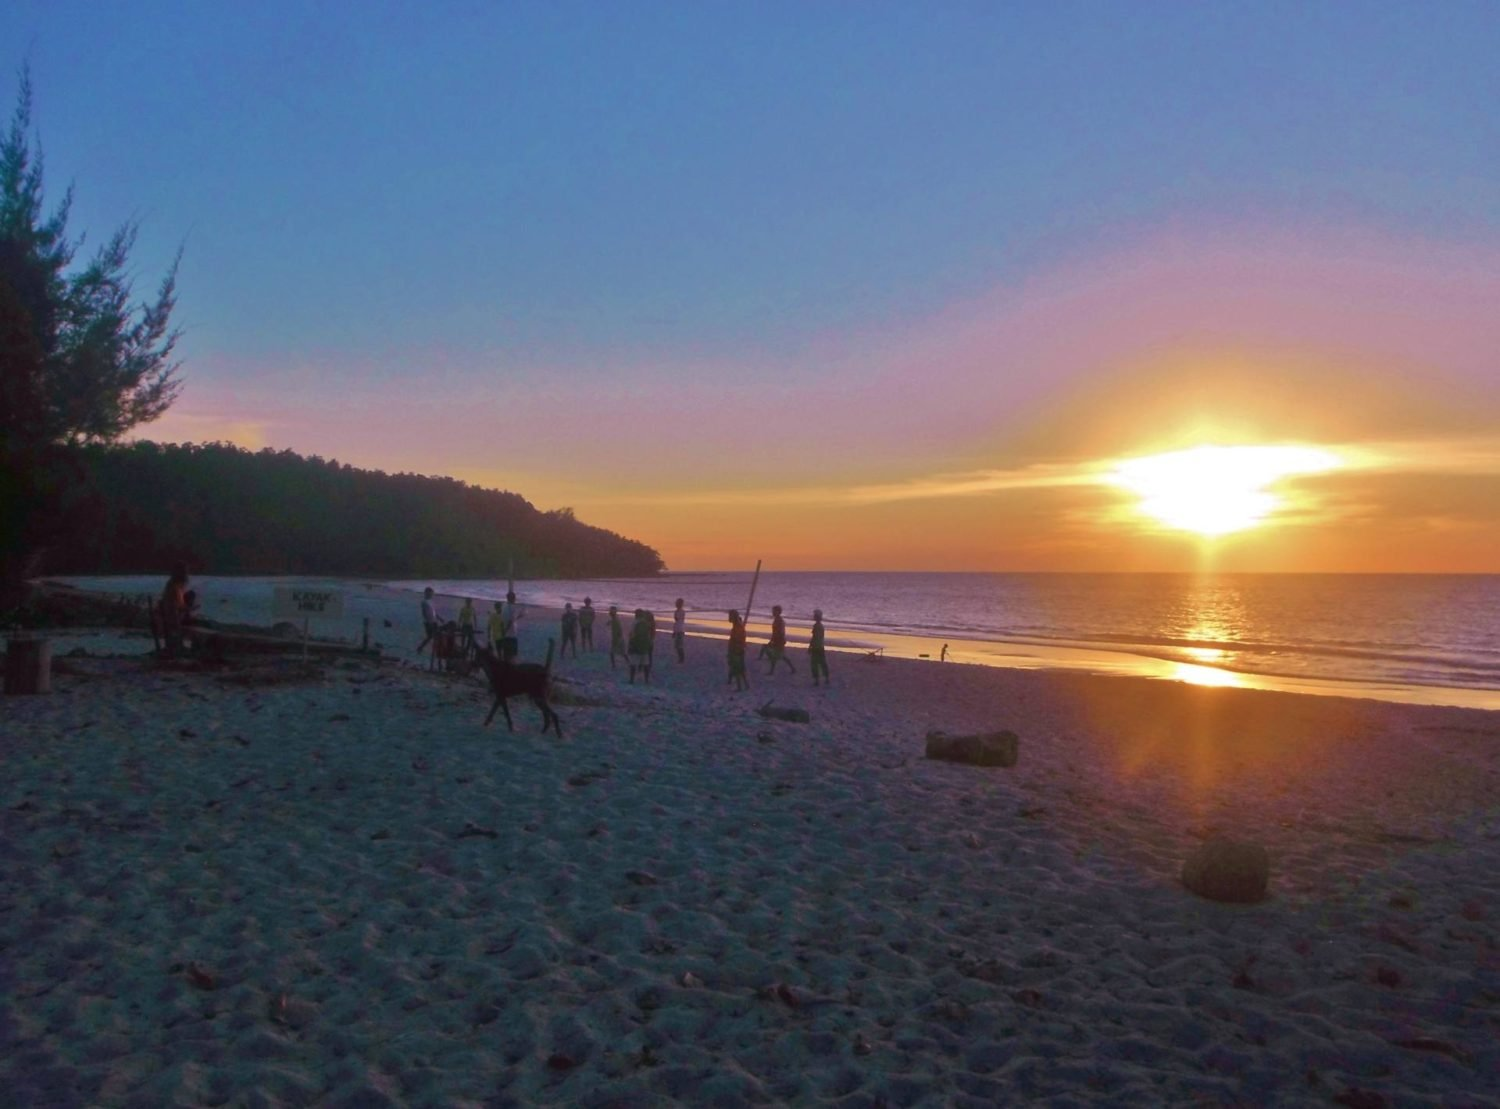 Borneo beaches at sunsets